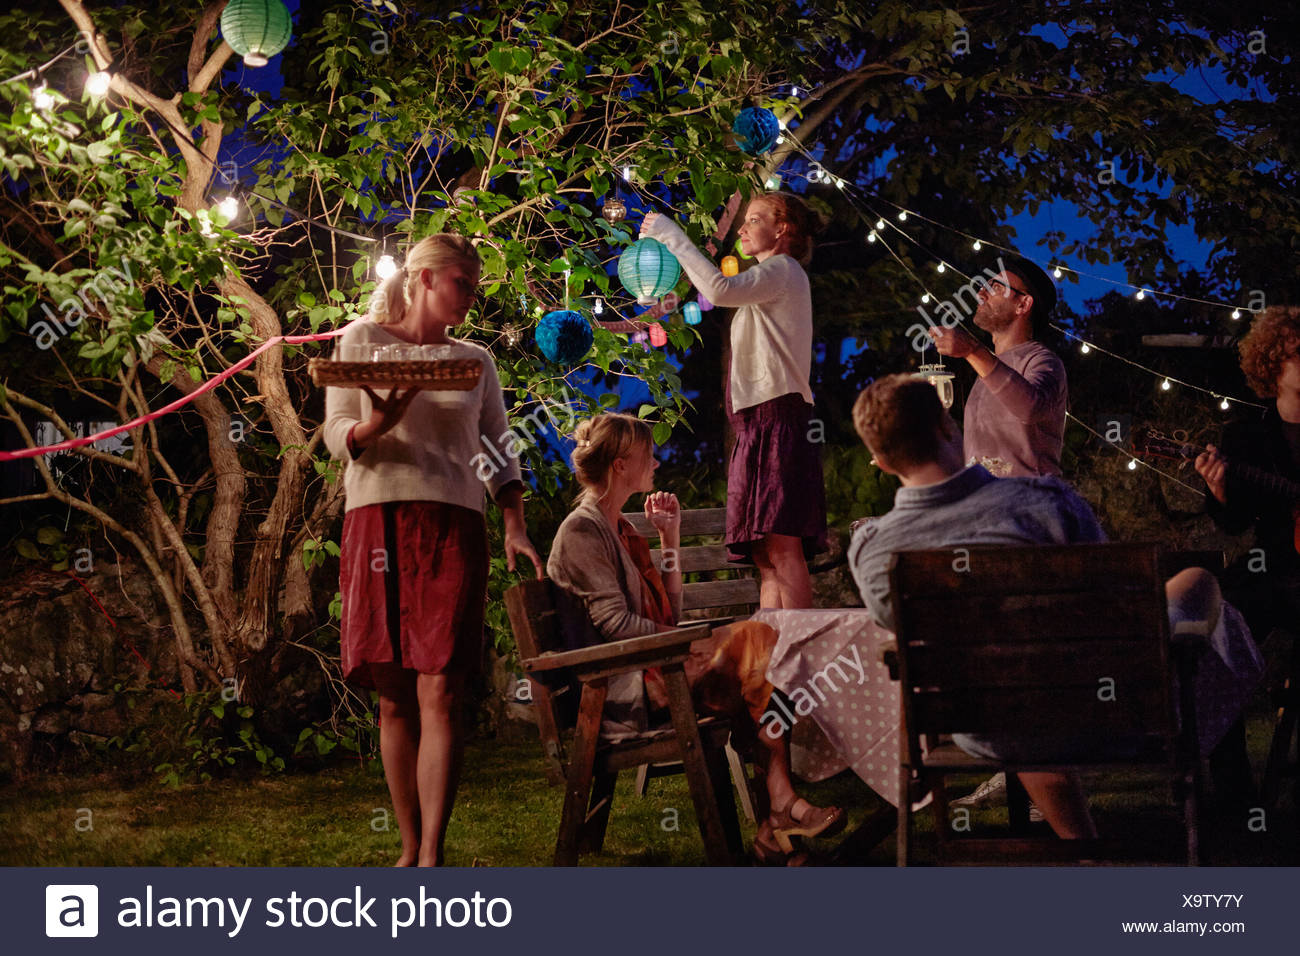 Group of adults preparing for garden party at night - Stock Image